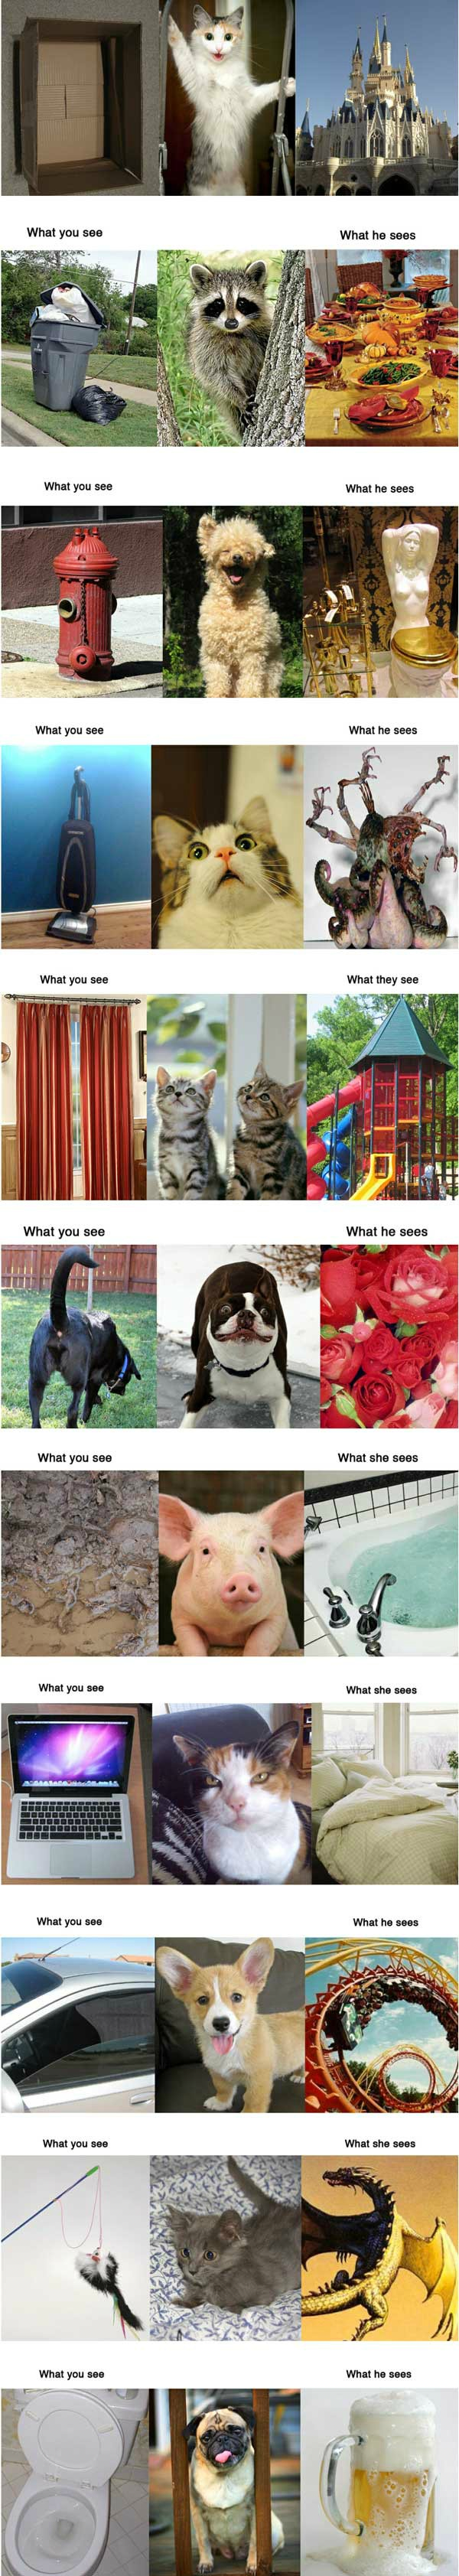 What you see vs. Funny picture